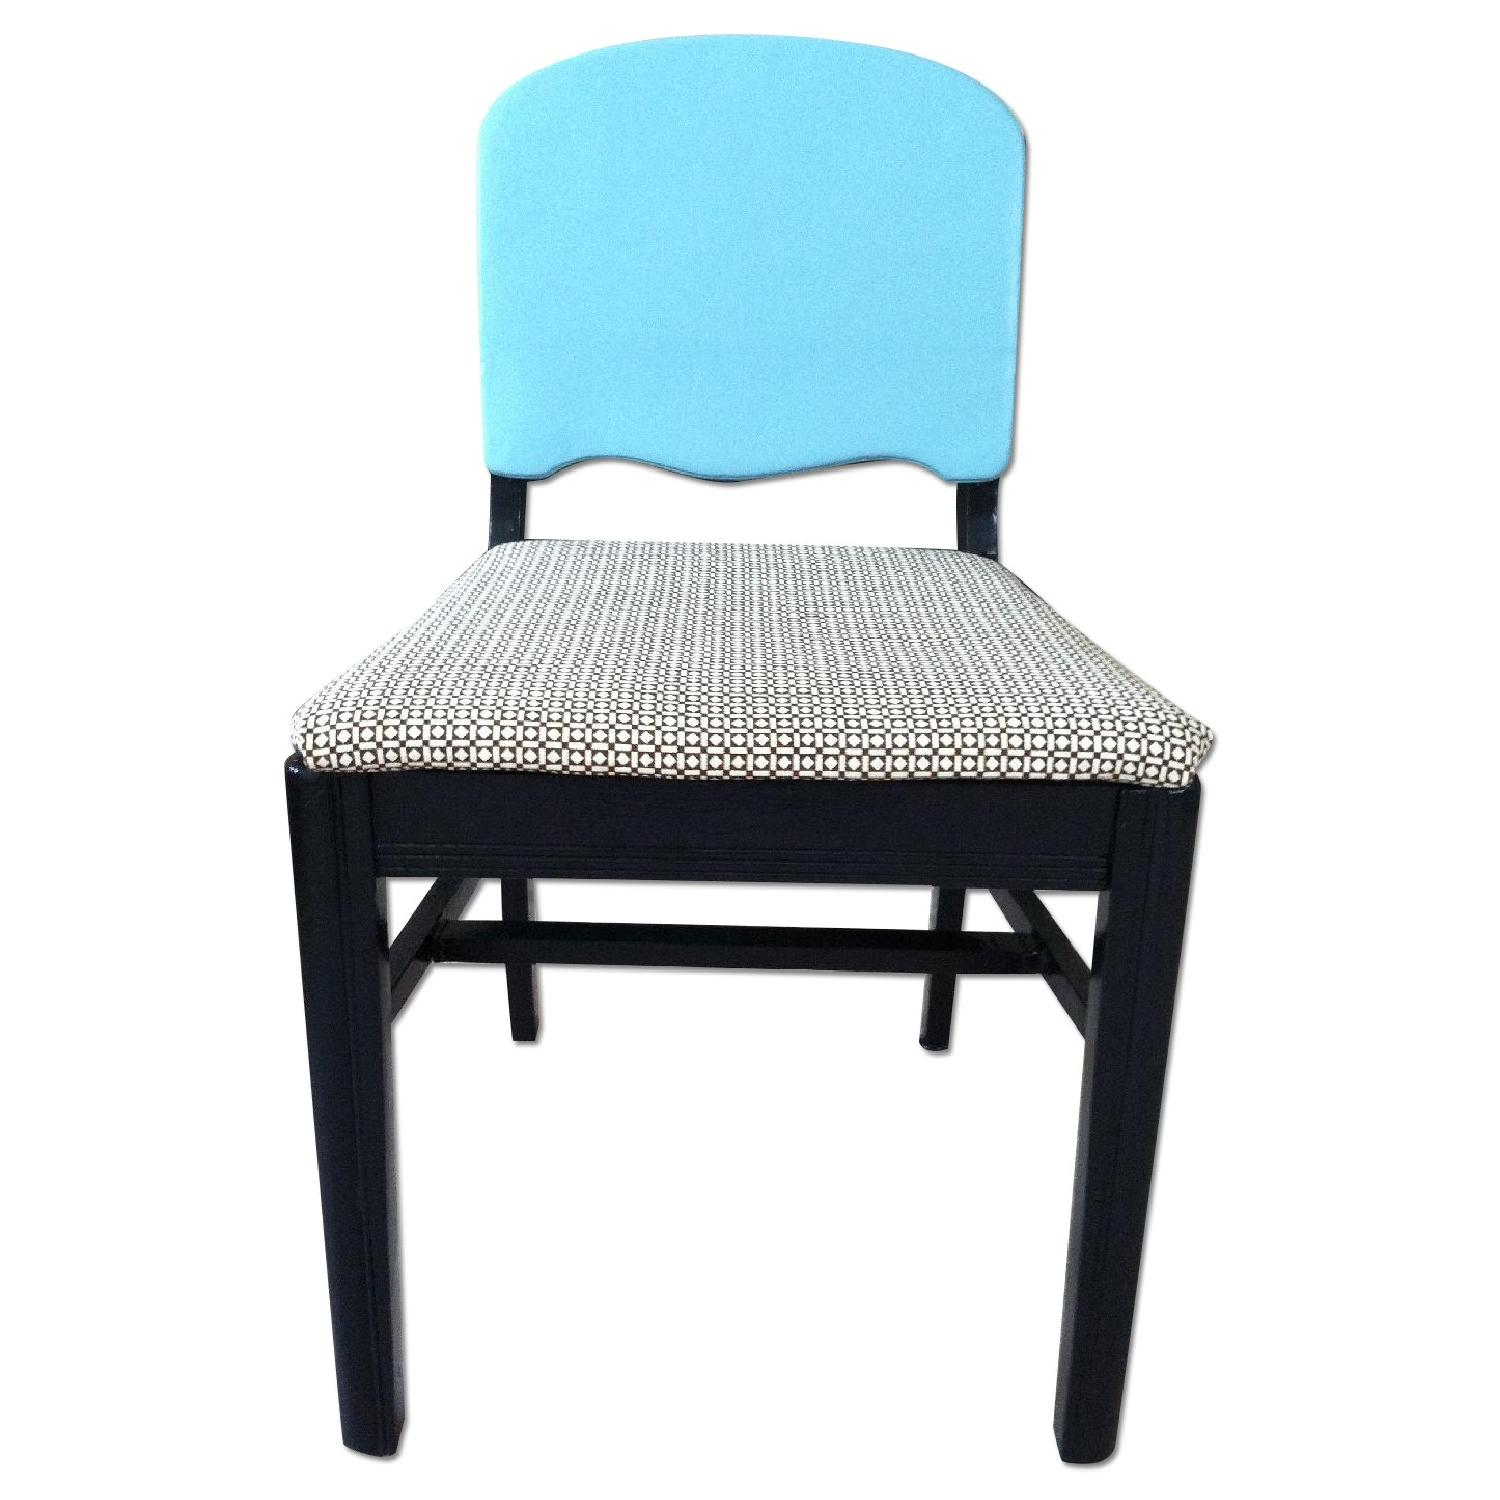 Vintage Accent Chair Vintage Black Blue Accent Chair